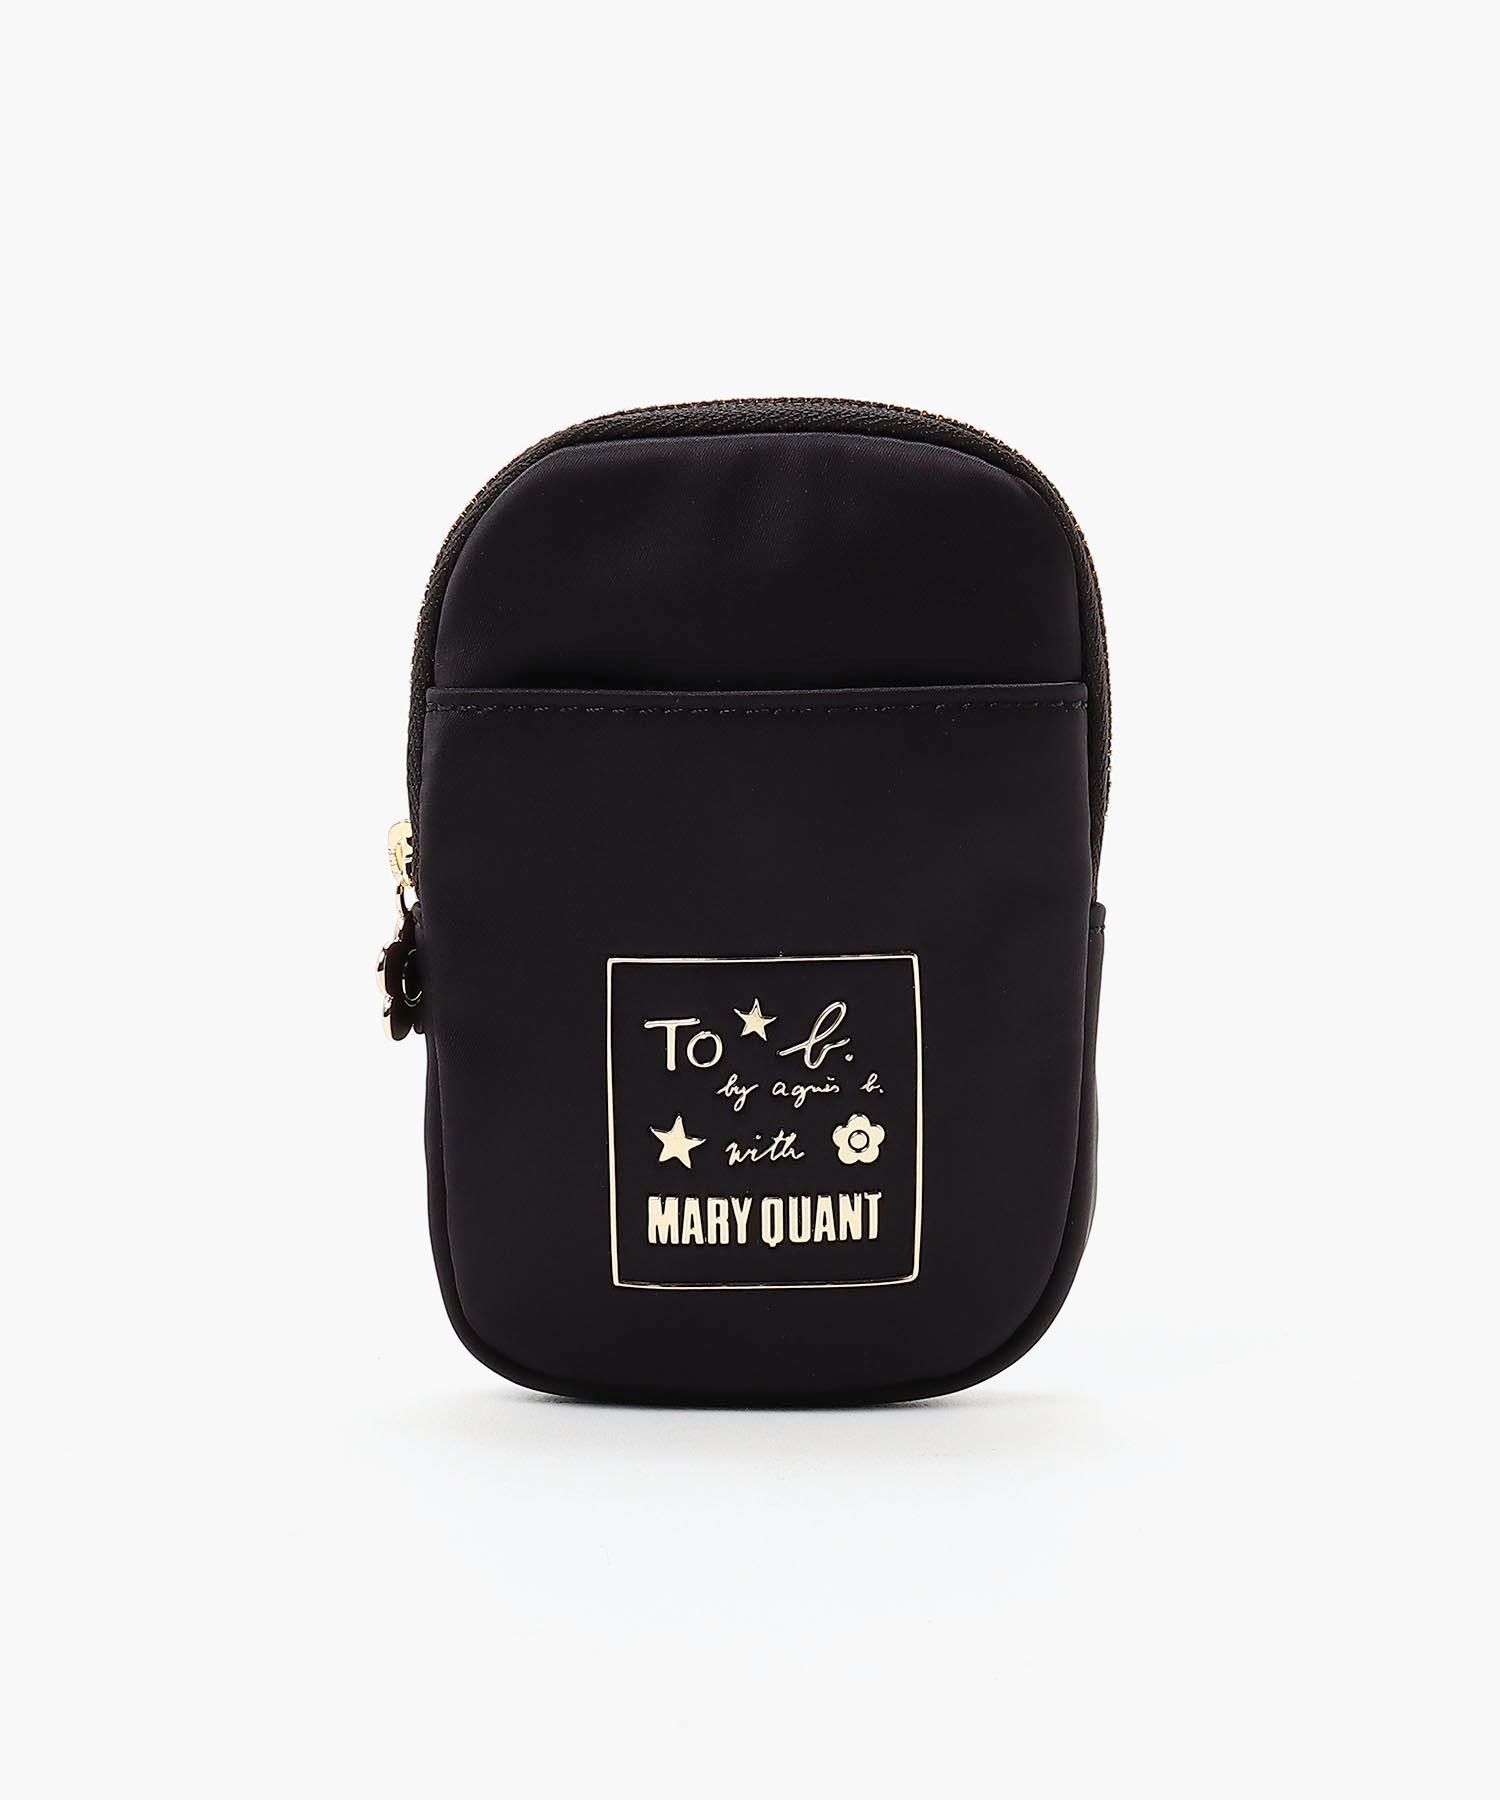 WS27 LIP POUCH MARY QUANTコラボ リップポーチ